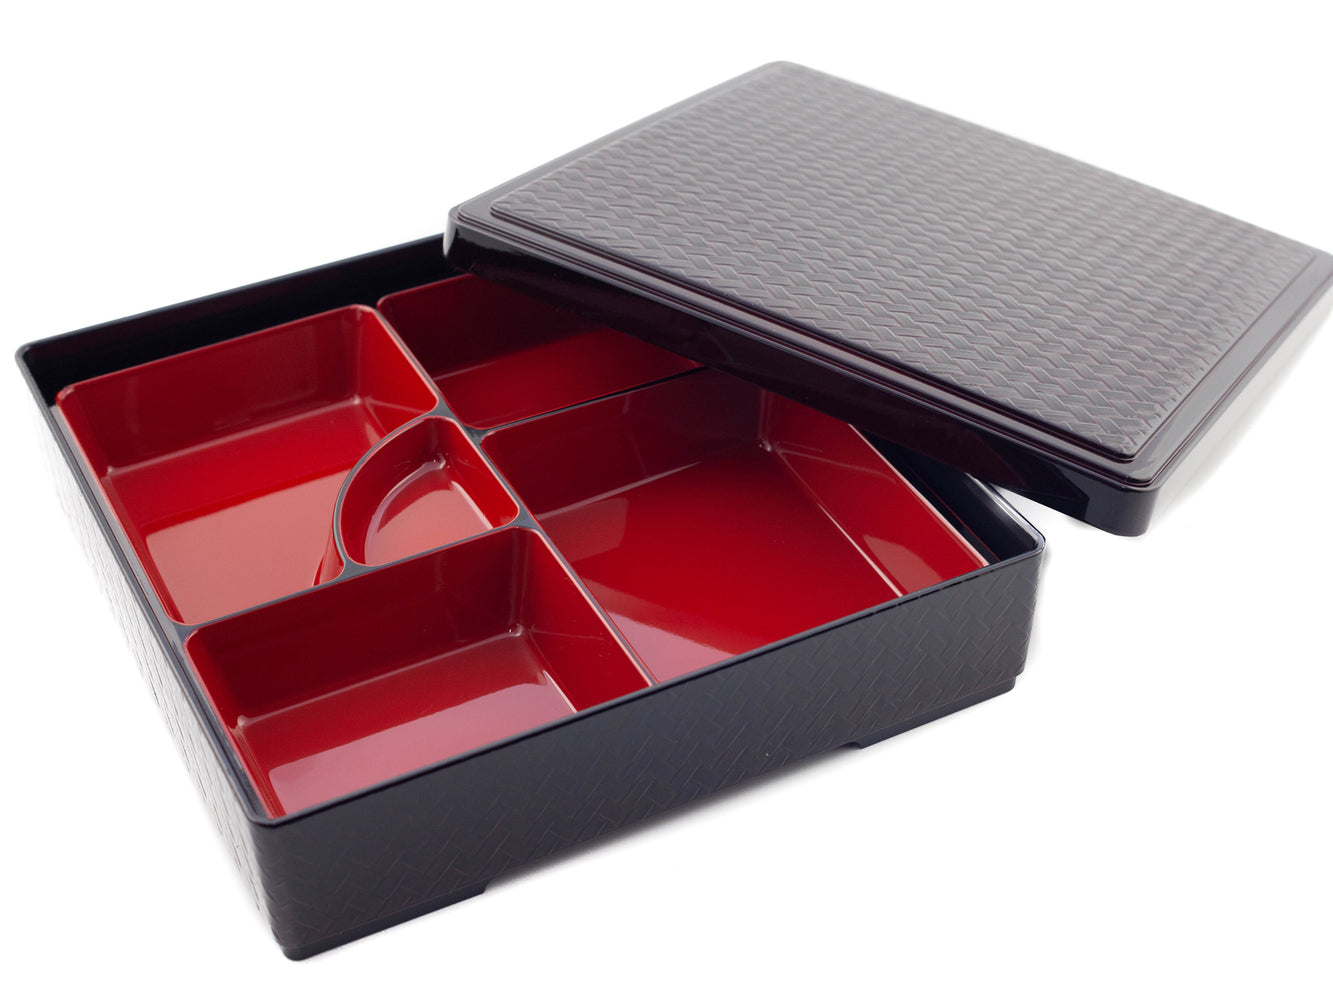 Shokado Ajiro Bento Box by Hakoya - Bento&co Japanese Bento Lunch Boxes and Kitchenware Specialists